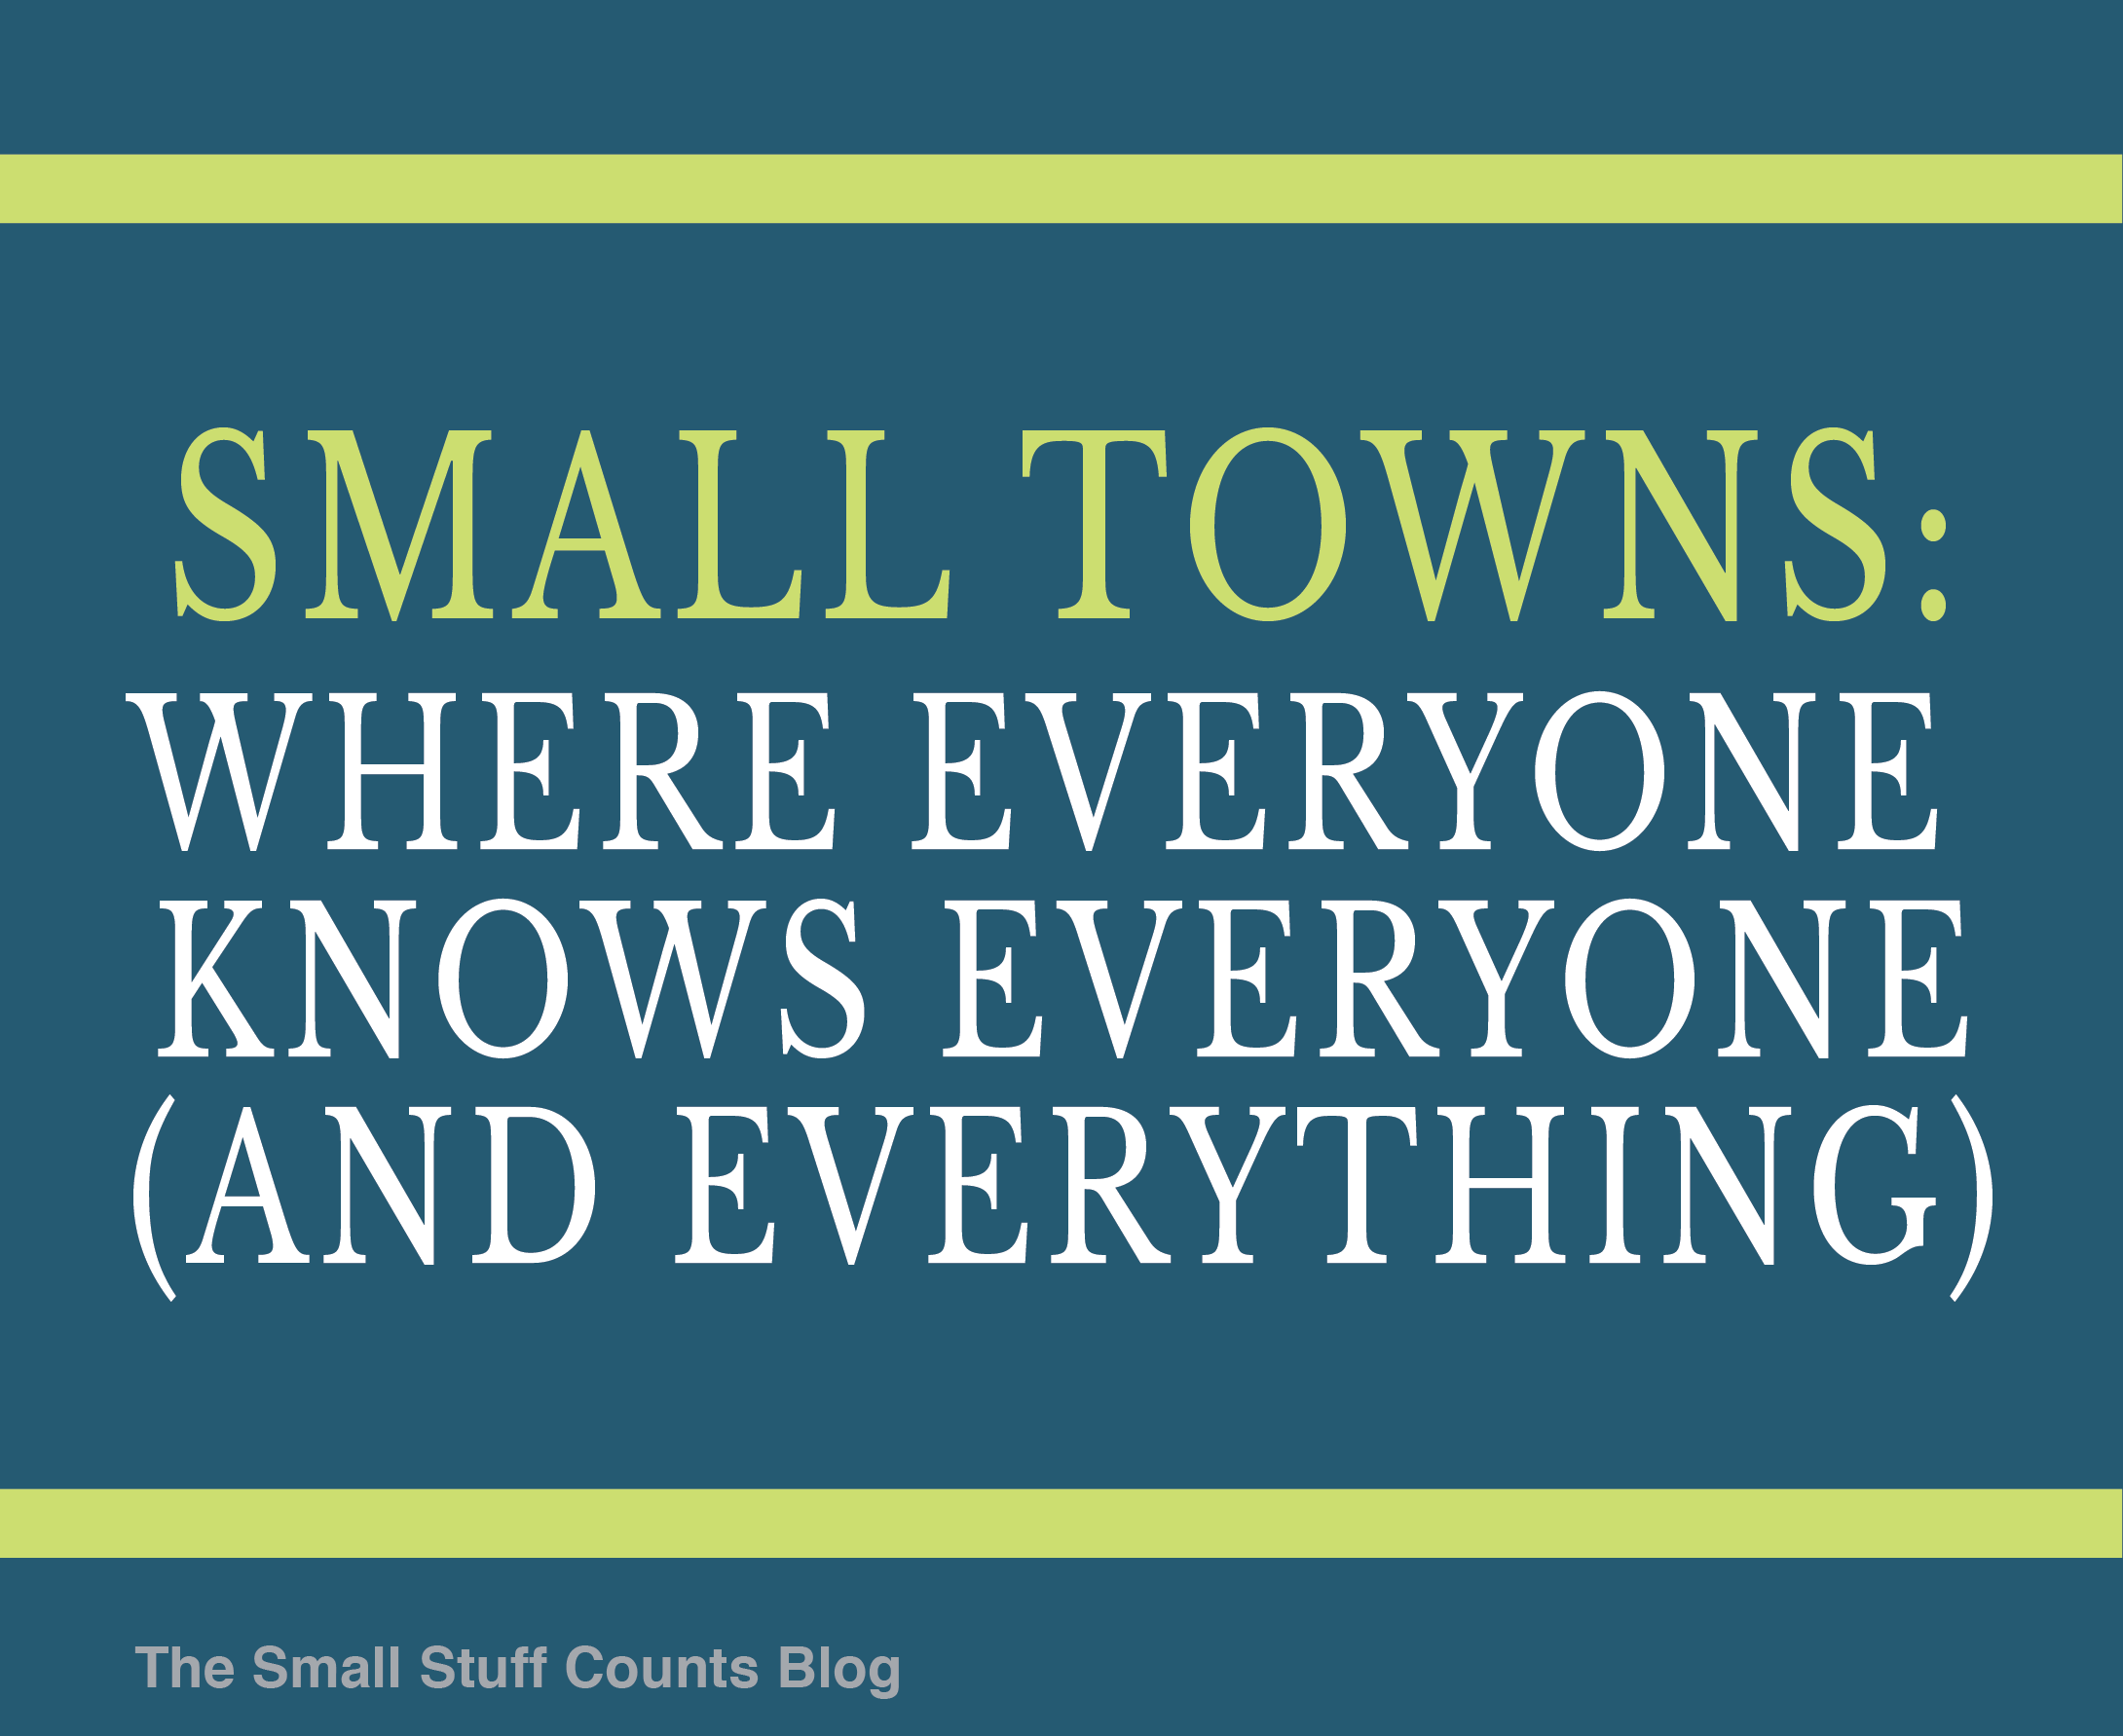 Small Town Life Quotes Everyone Knows Everyone  The Small Stuff Counts